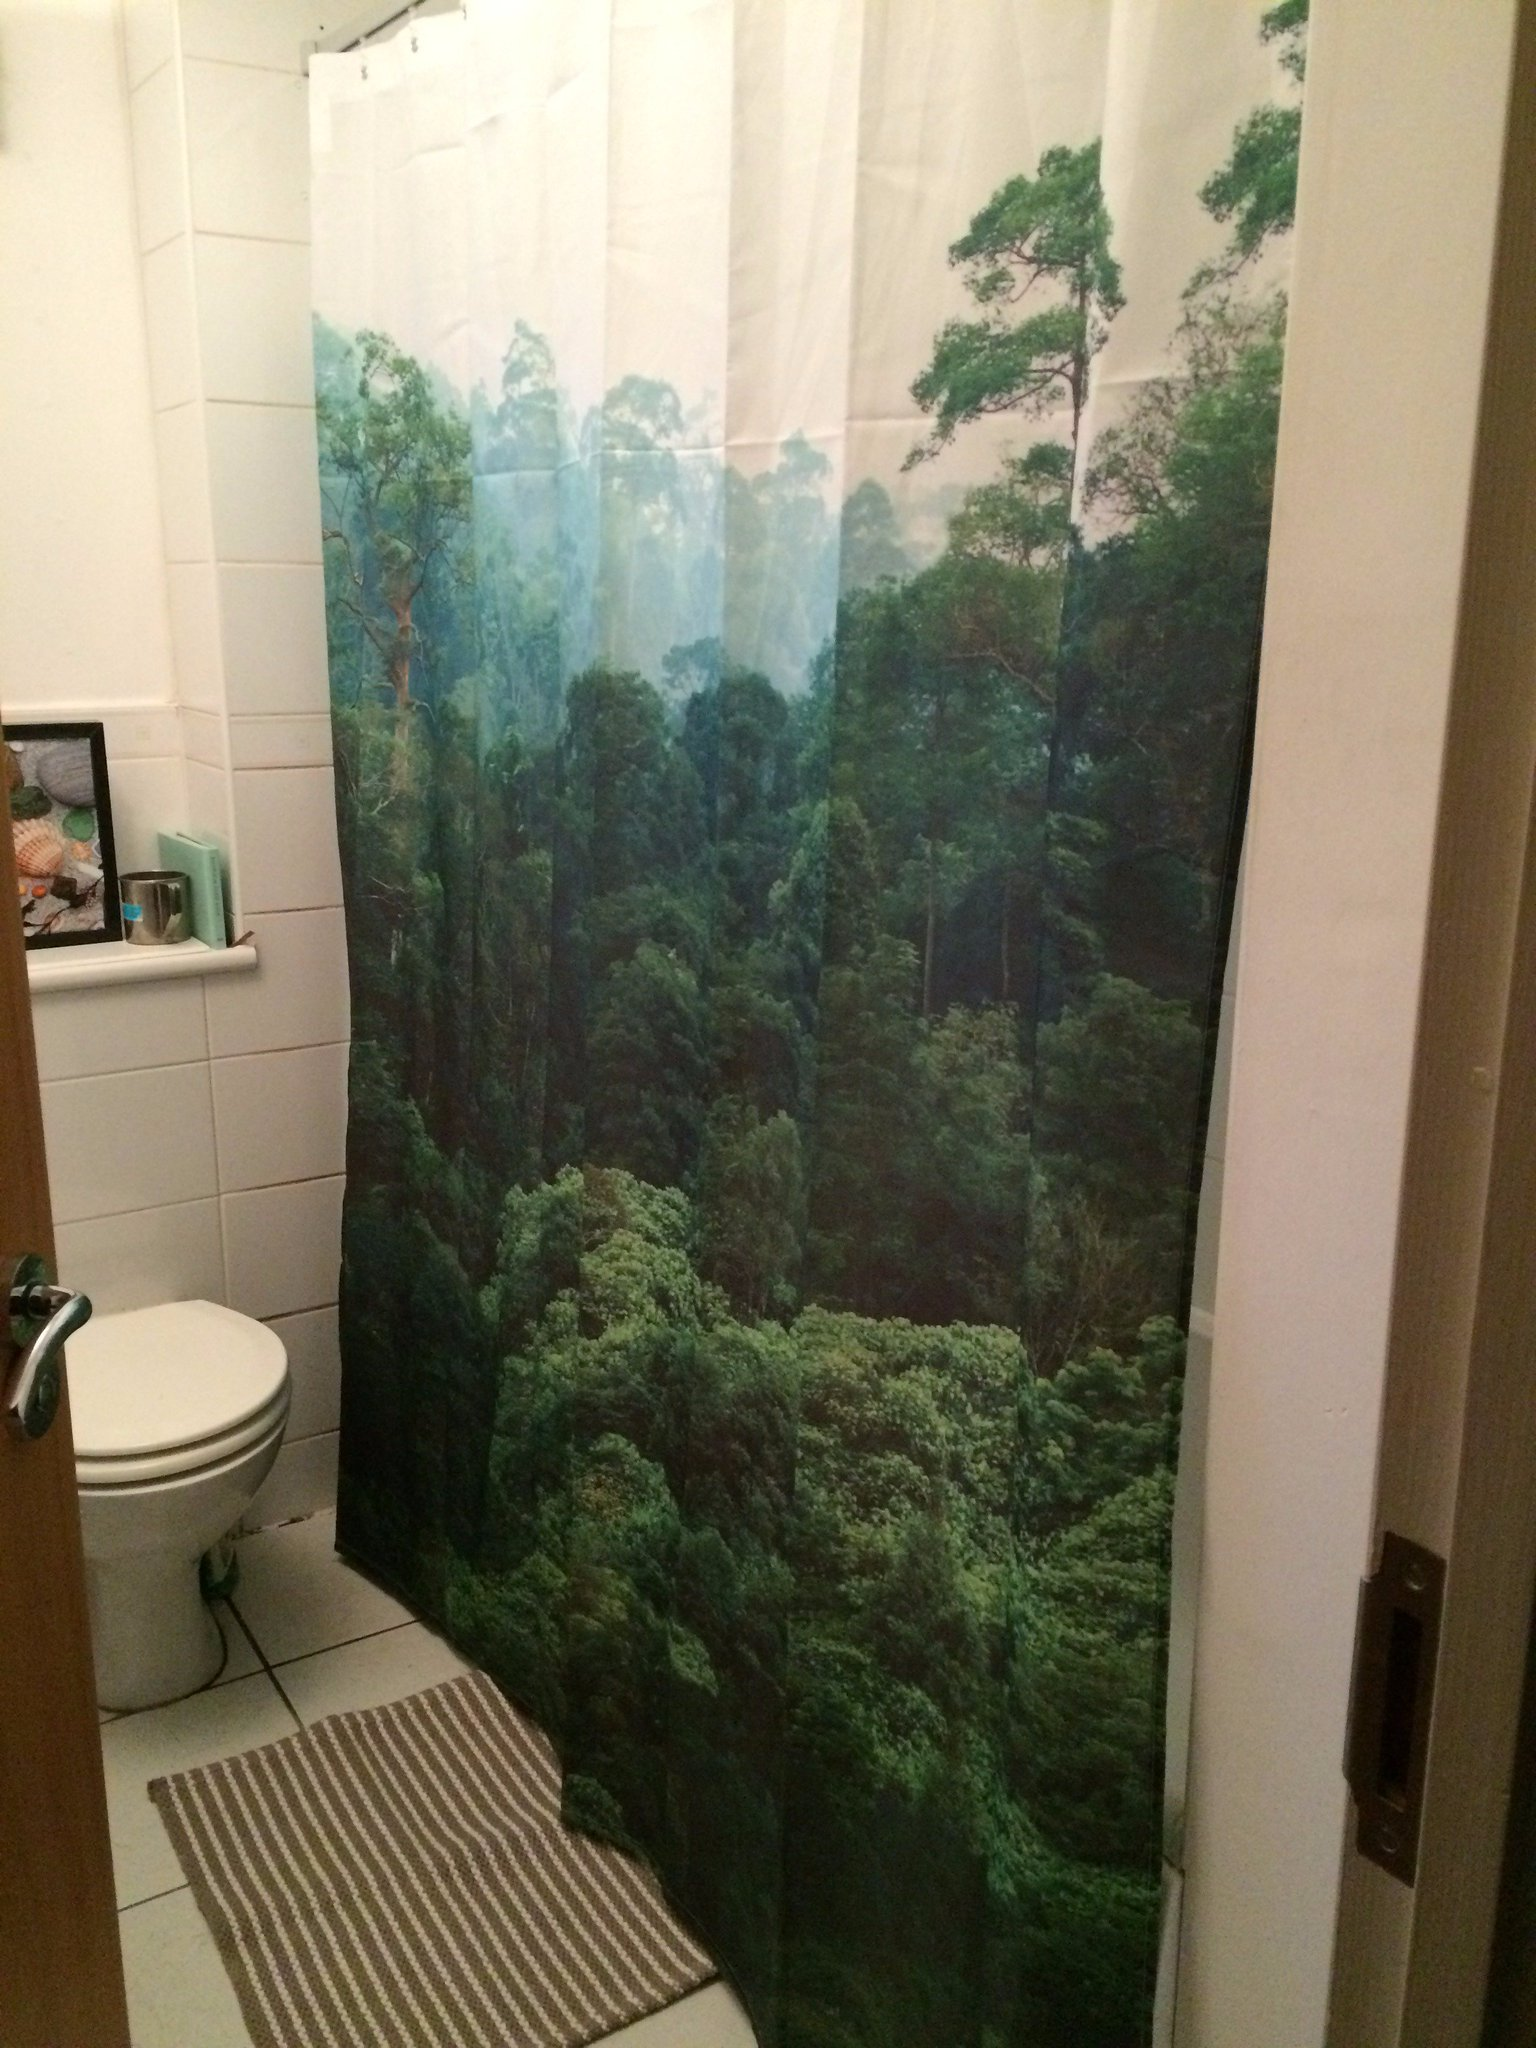 Rainforest shower curtain - Eve On Twitter Turned My Bland Bathroom Into A Rainforest Today With This Gorgeous Shower Curtain From Hm Jungle Decor Hmhome Https T Co S5v9rjl4uk